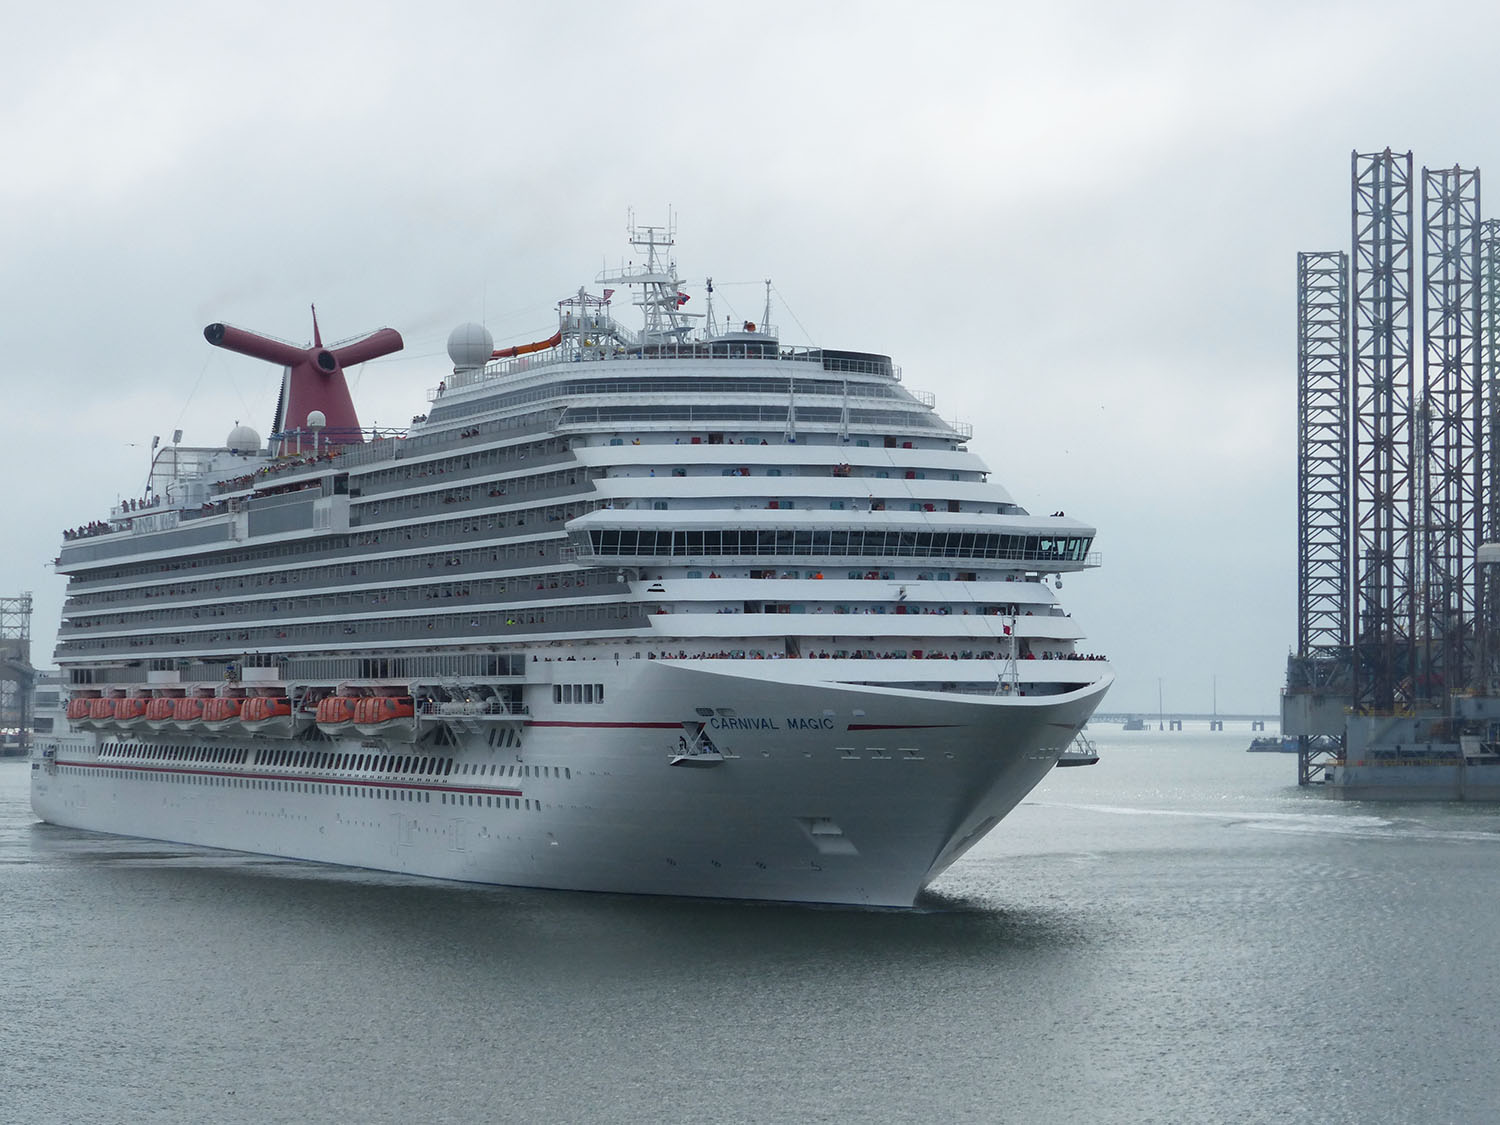 Here comes the Carnival Cruise ship